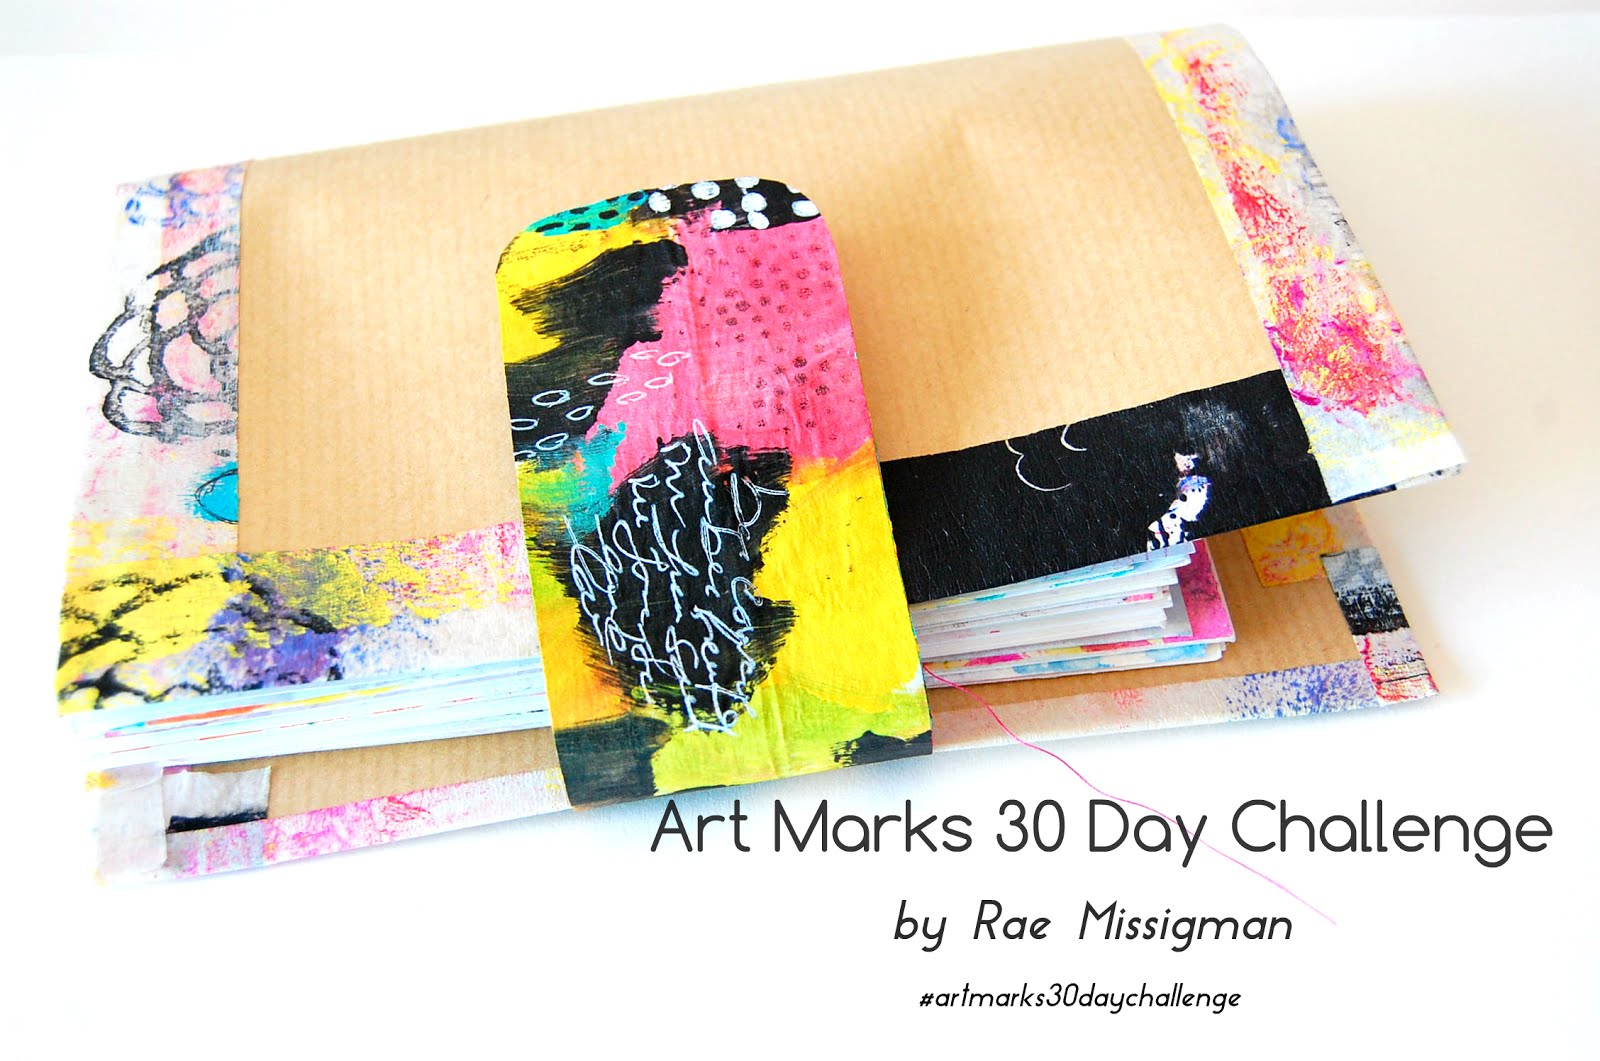 My art marks journal